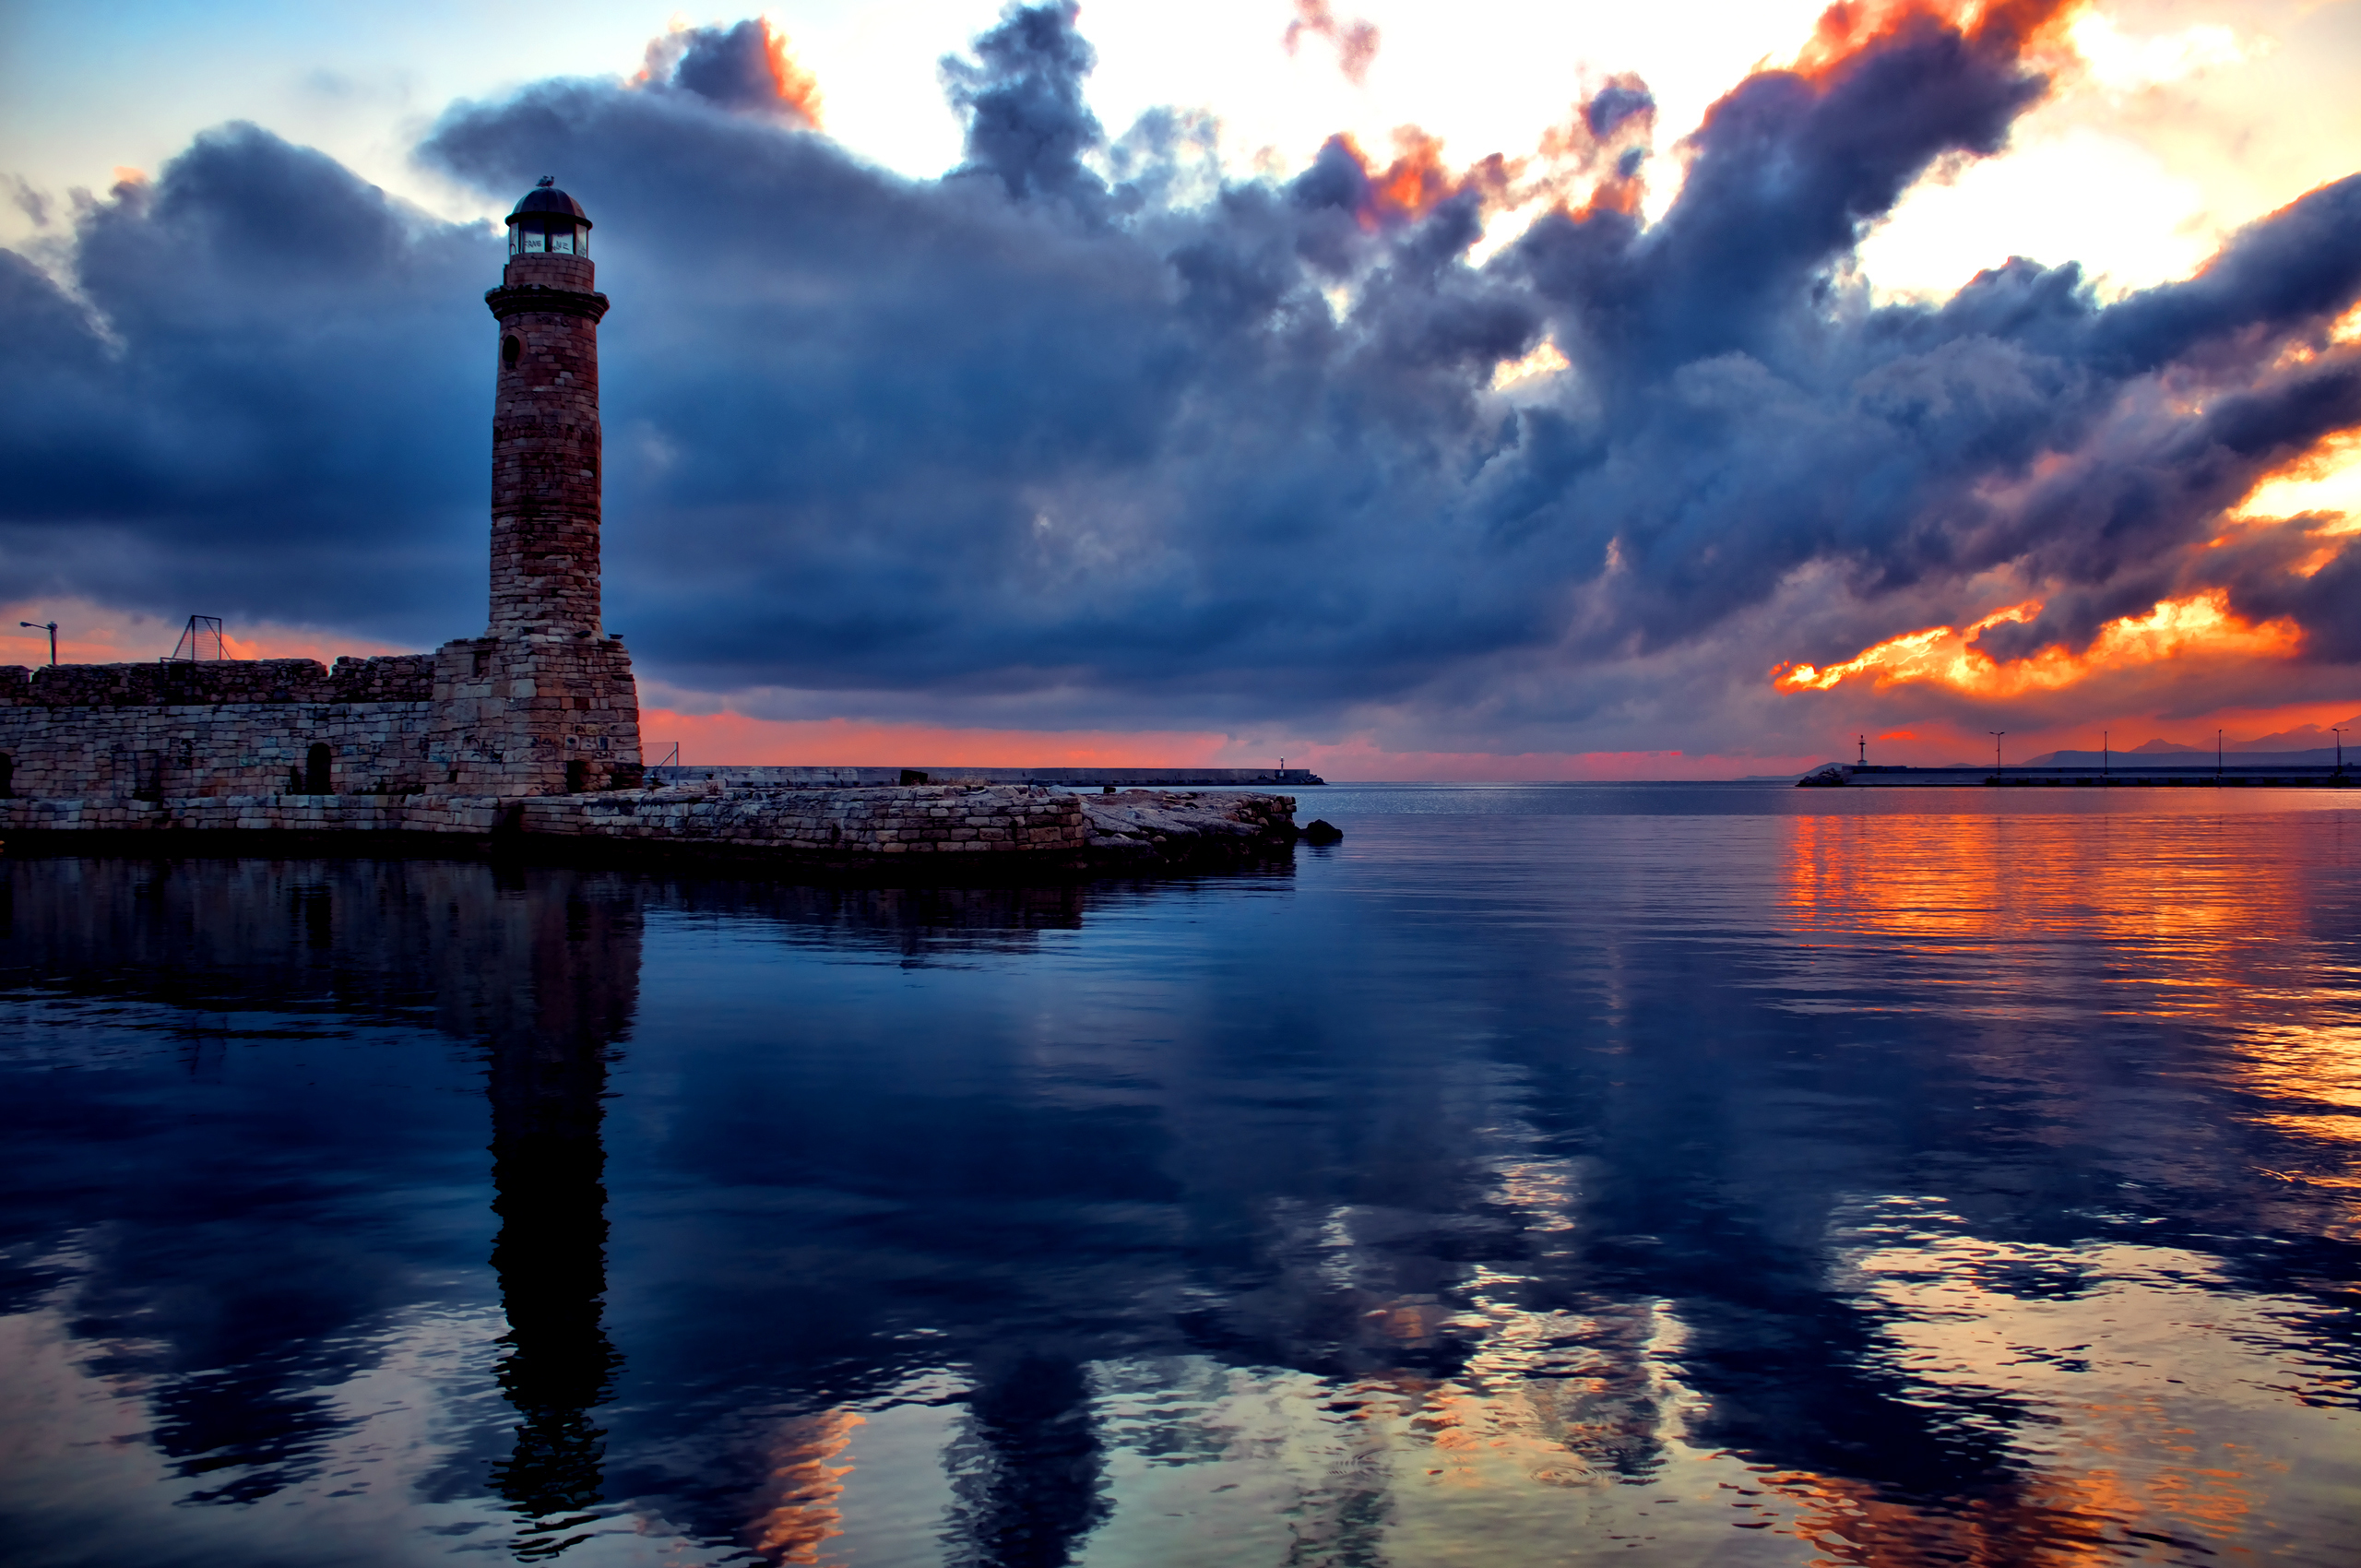 Lighthouse photos by jean white Music Music News, New Songs, Videos, Music Shows and